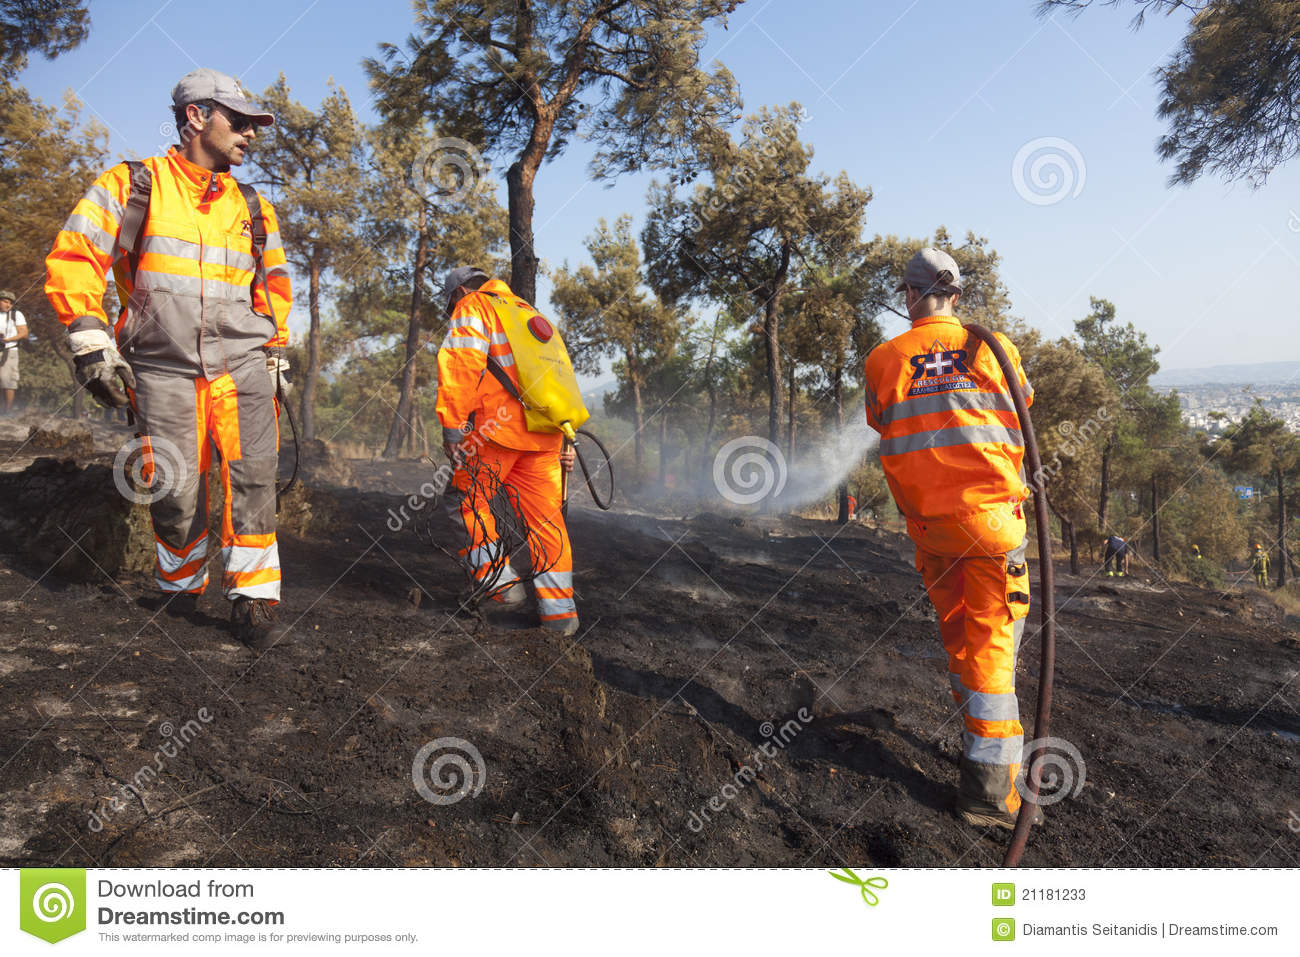 Fire Department Extinguishes a forest fire